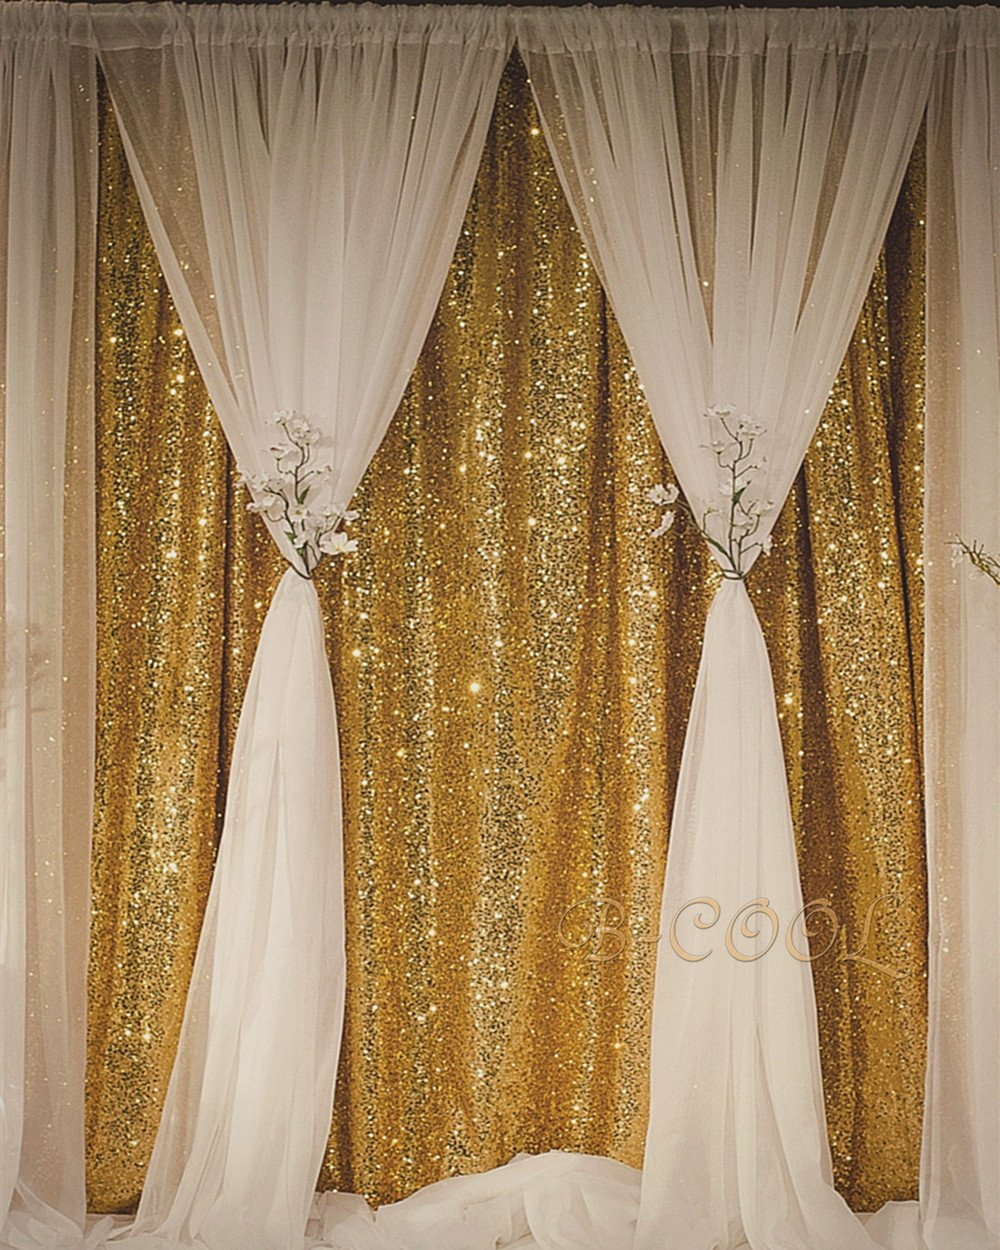 B-COOL Sequin Backdrop Gold 4ft x 6.5ft Sequin Photography Backdrop Wedding Photo Booth Backdrop Photography Background for wedding/Party/Photography/Curtain/Birthday/Christmas/Prom/Other Event Decor by B-COOL